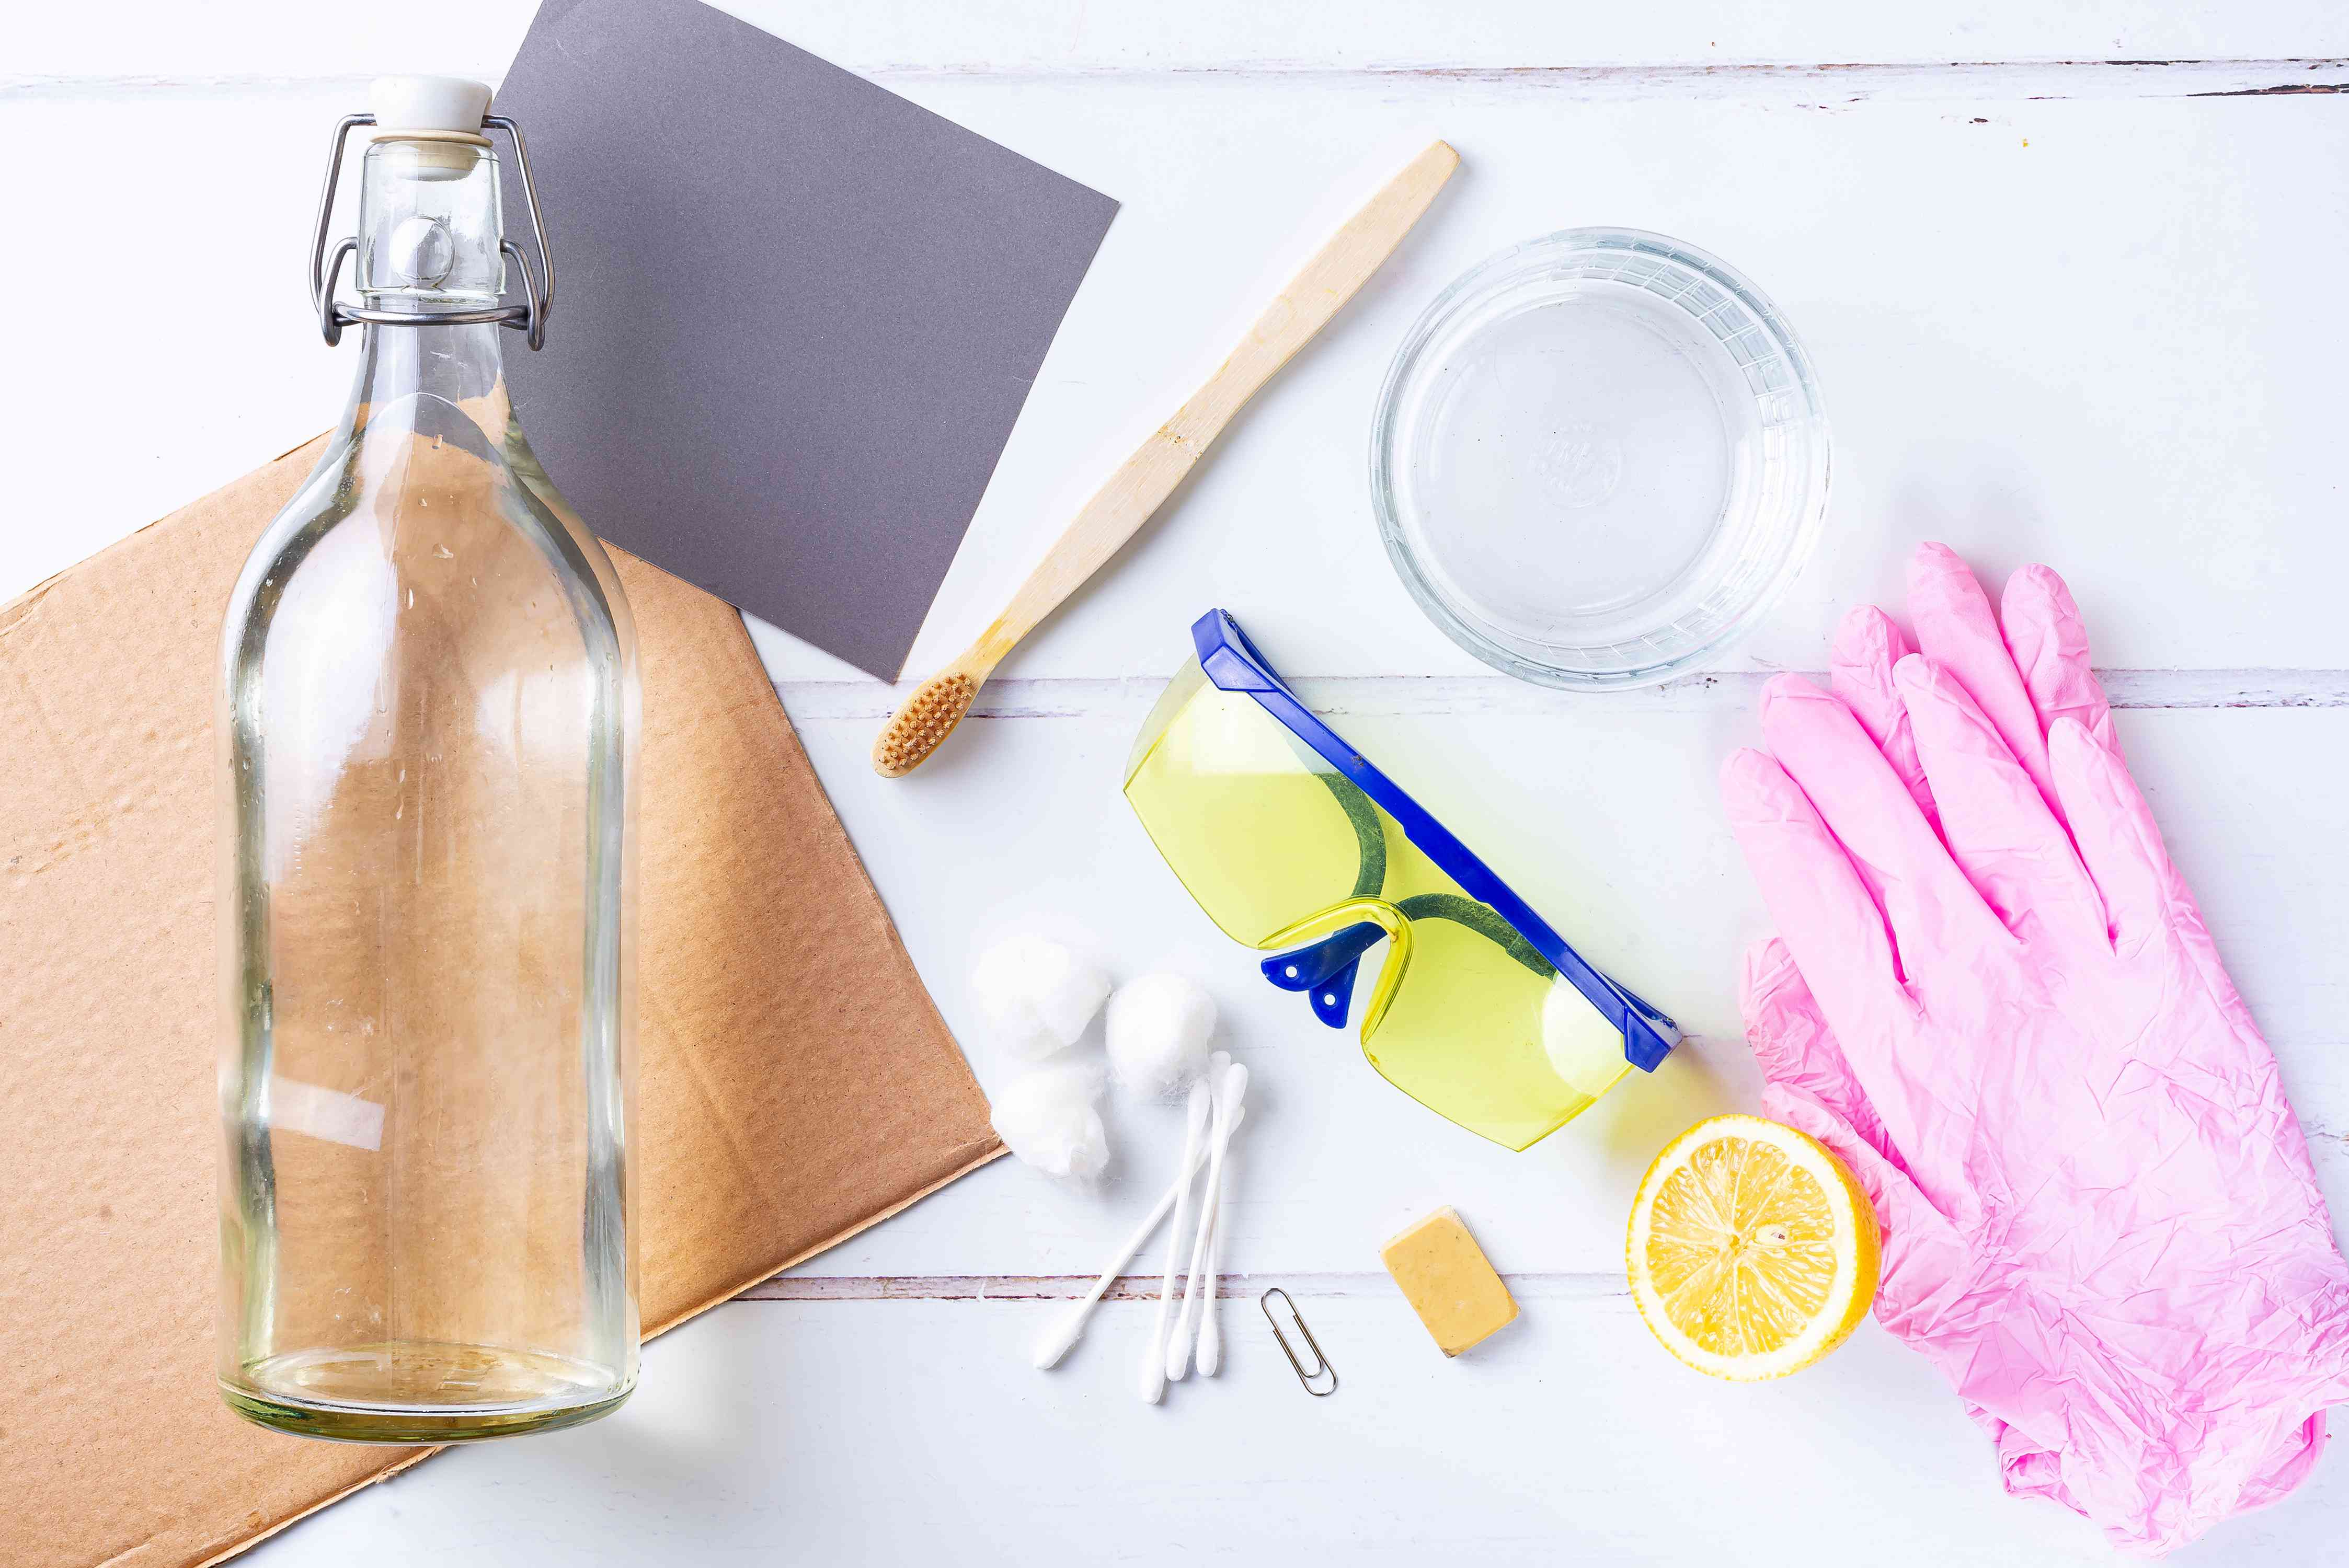 Materials and tools laid on white surface to clean battery acid